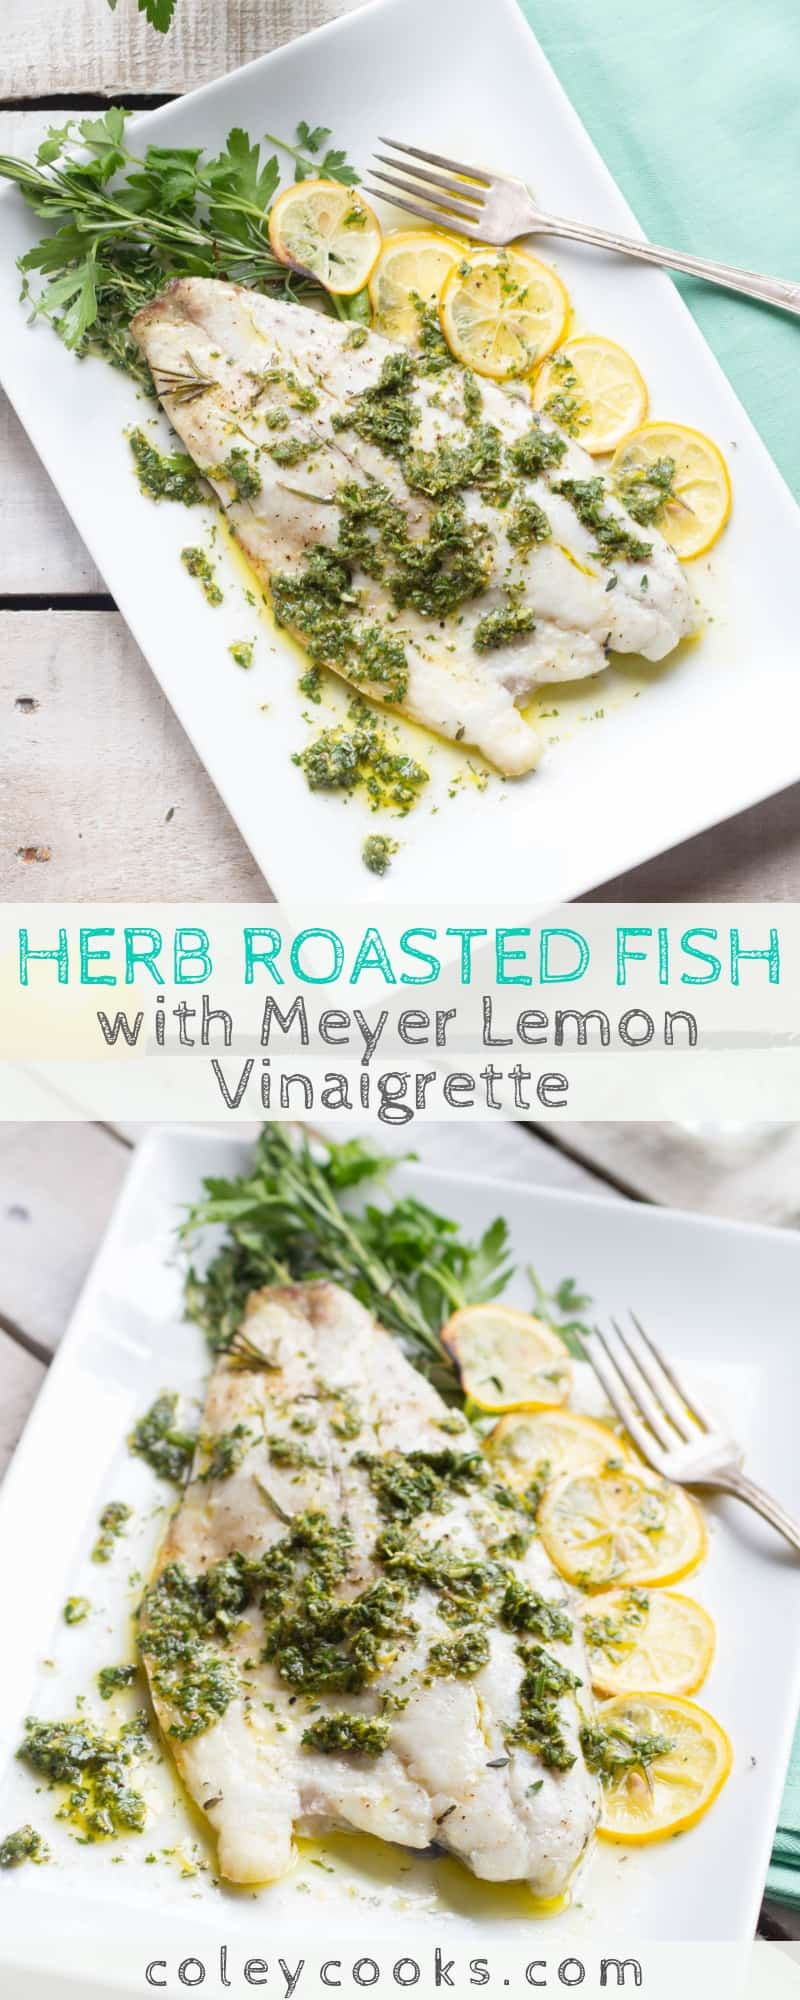 This easy recipe for Herb Roasted Fish with Meyer Lemon Vinaigrette is an easy, healthy recipe that can be made in 20 minutes! Adaptable to many different types of fish. #easy #fish #seafood #recipe #barramundi #meyerlemon #roasted   ColeyCooks.com